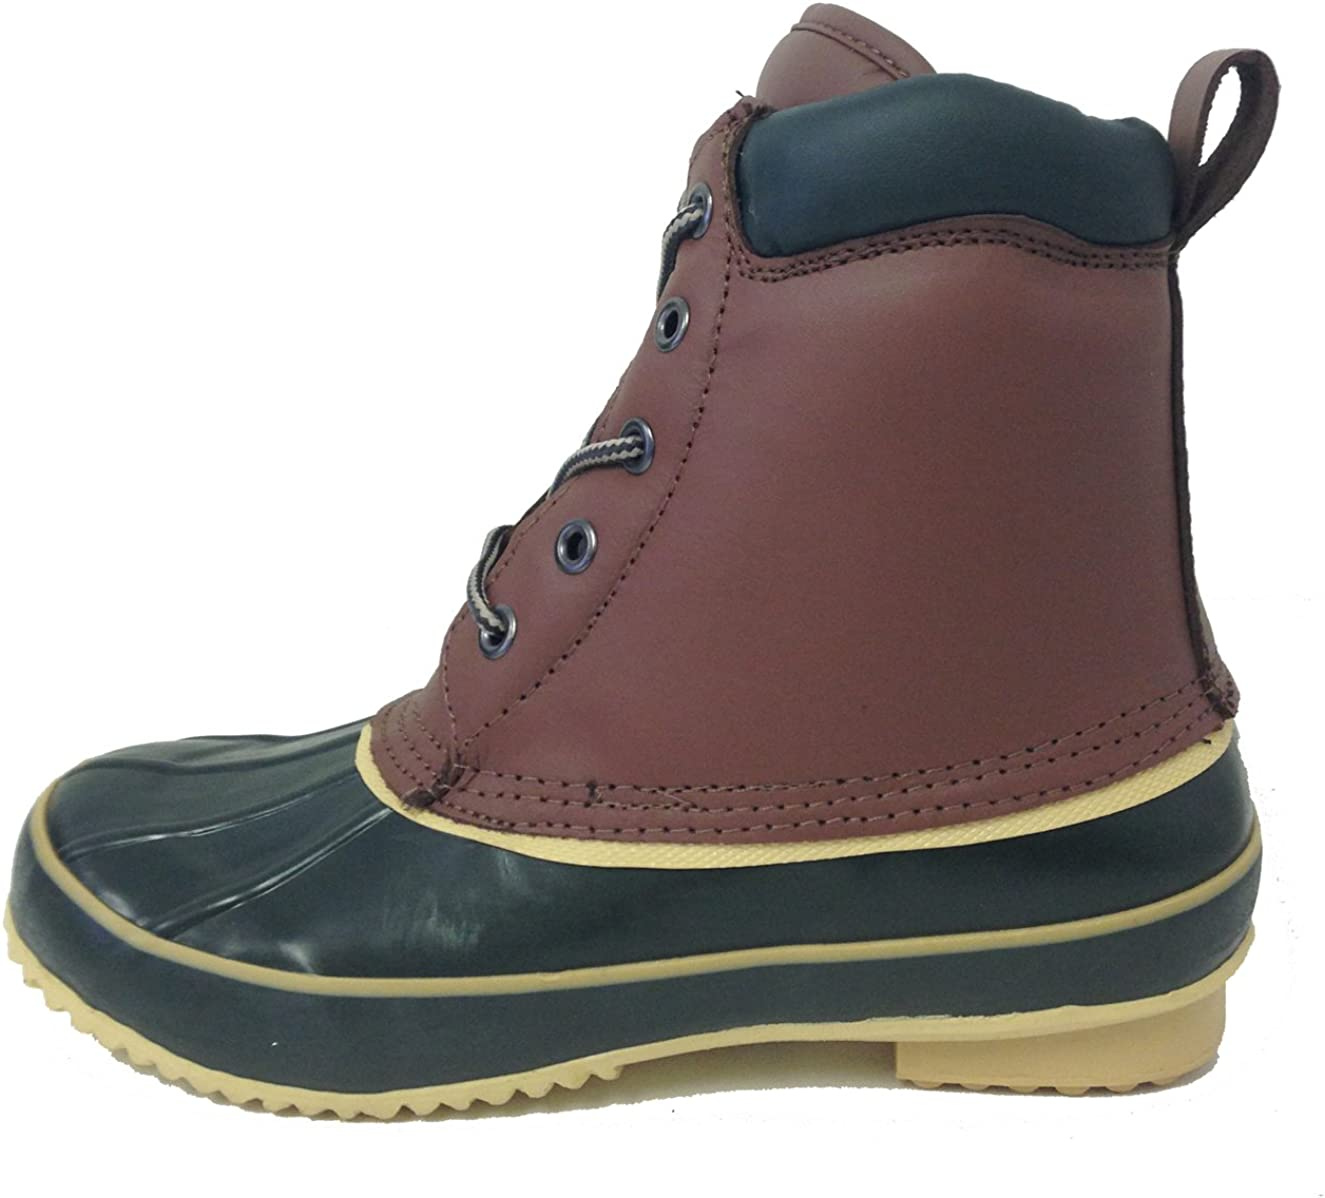 G-9021SC Women's Duck Boots Leather